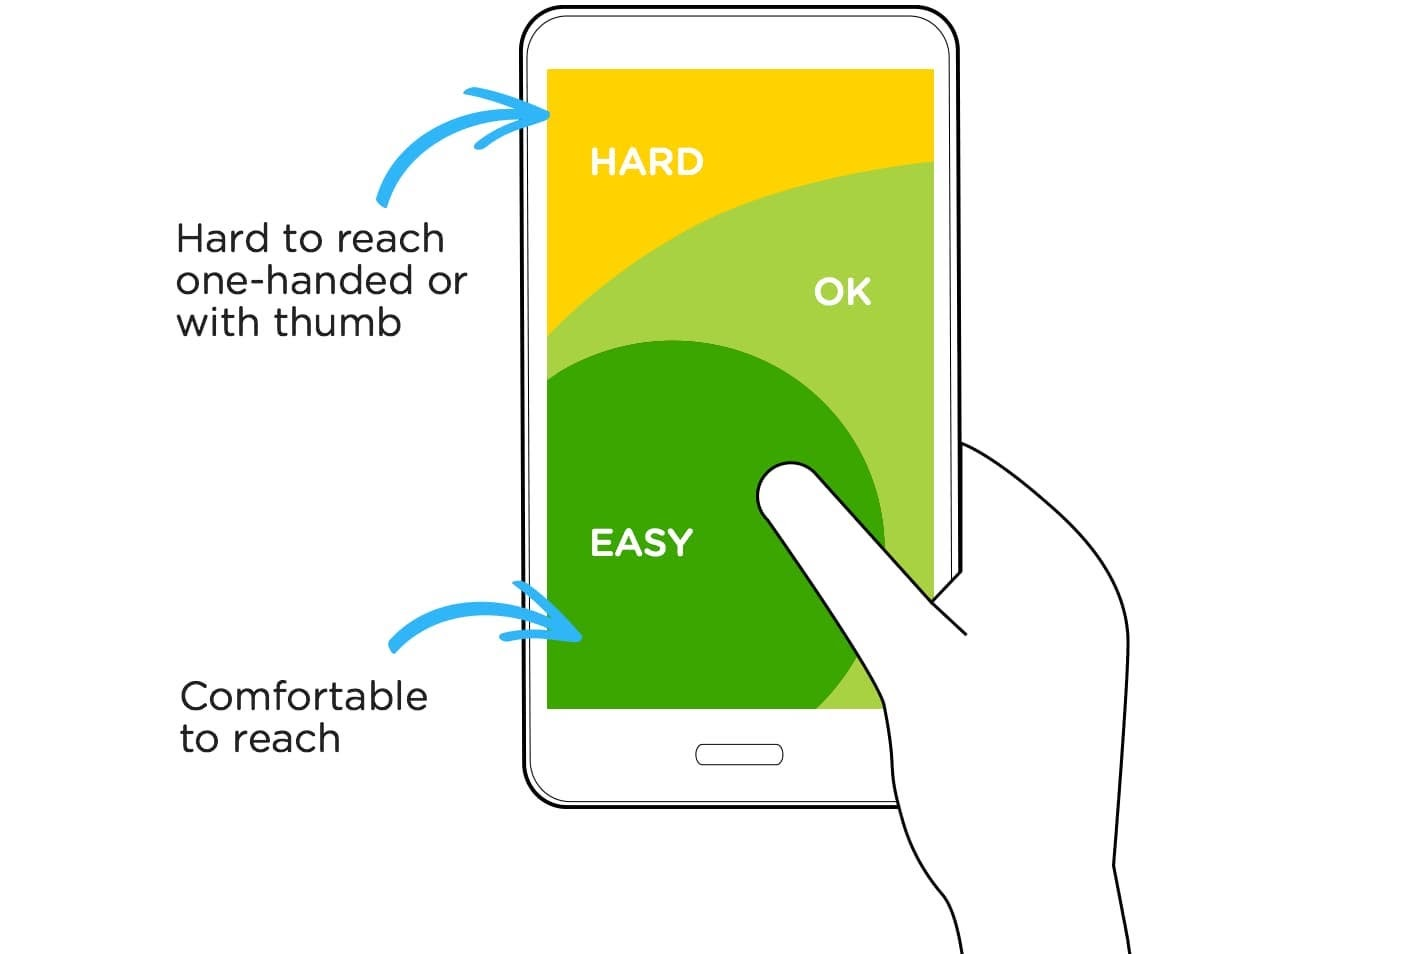 an illustration of a hand holding a phone, sholding the higher regions of the screen are more difficult to reach